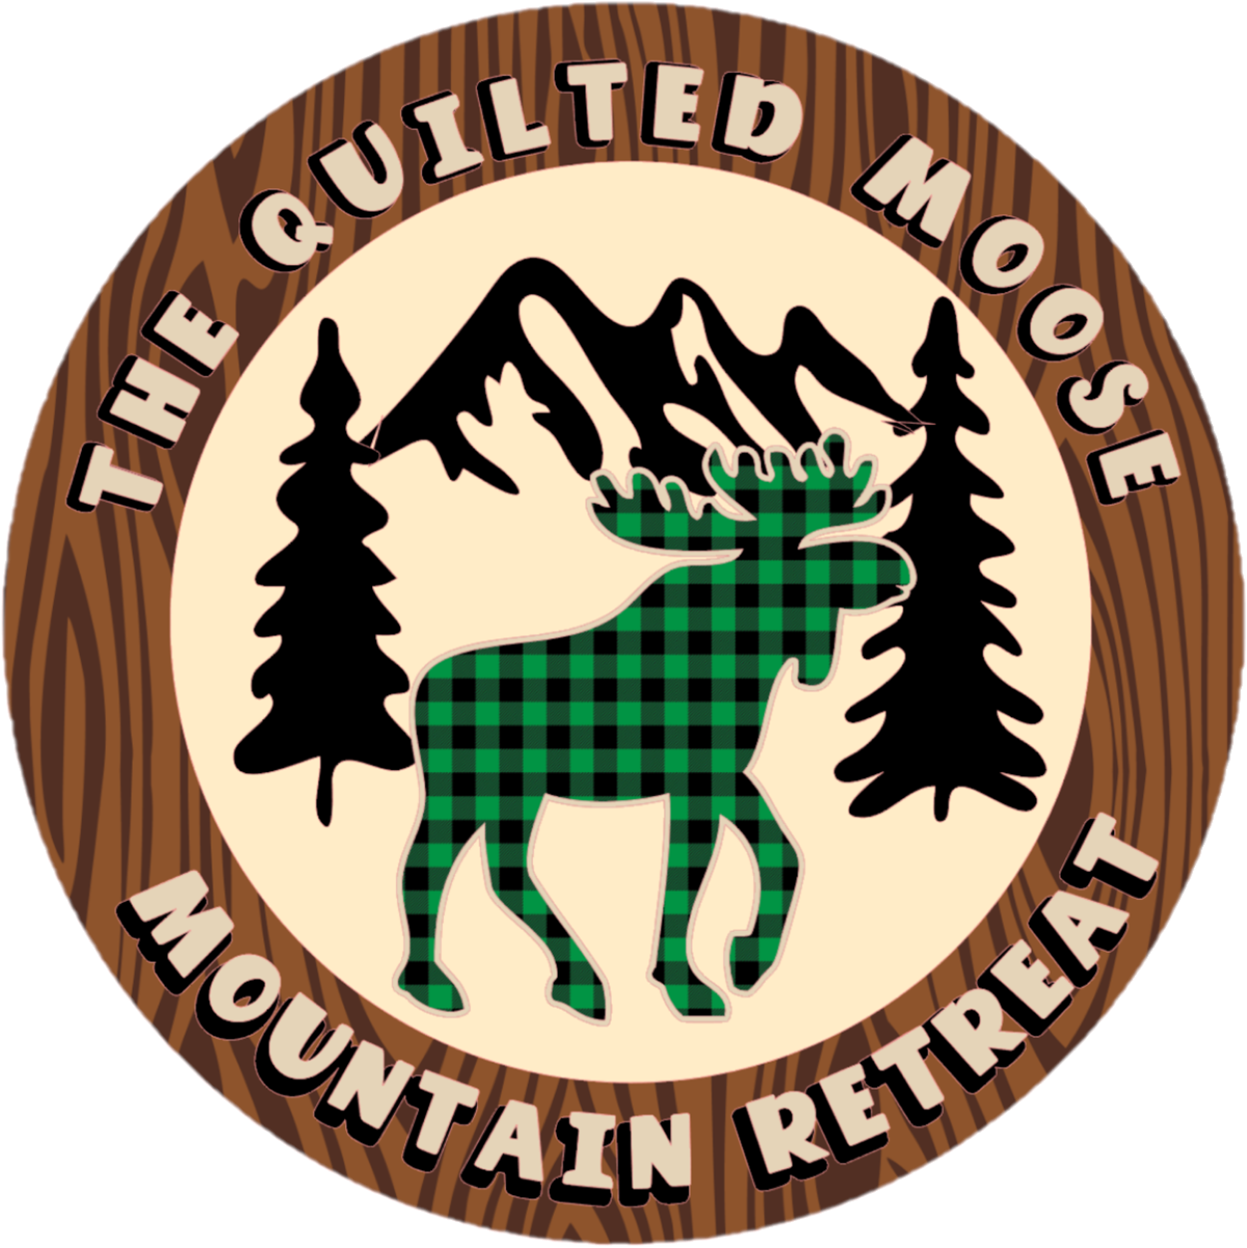 CALENDAR – The Quilted Moose Mountain Retreat